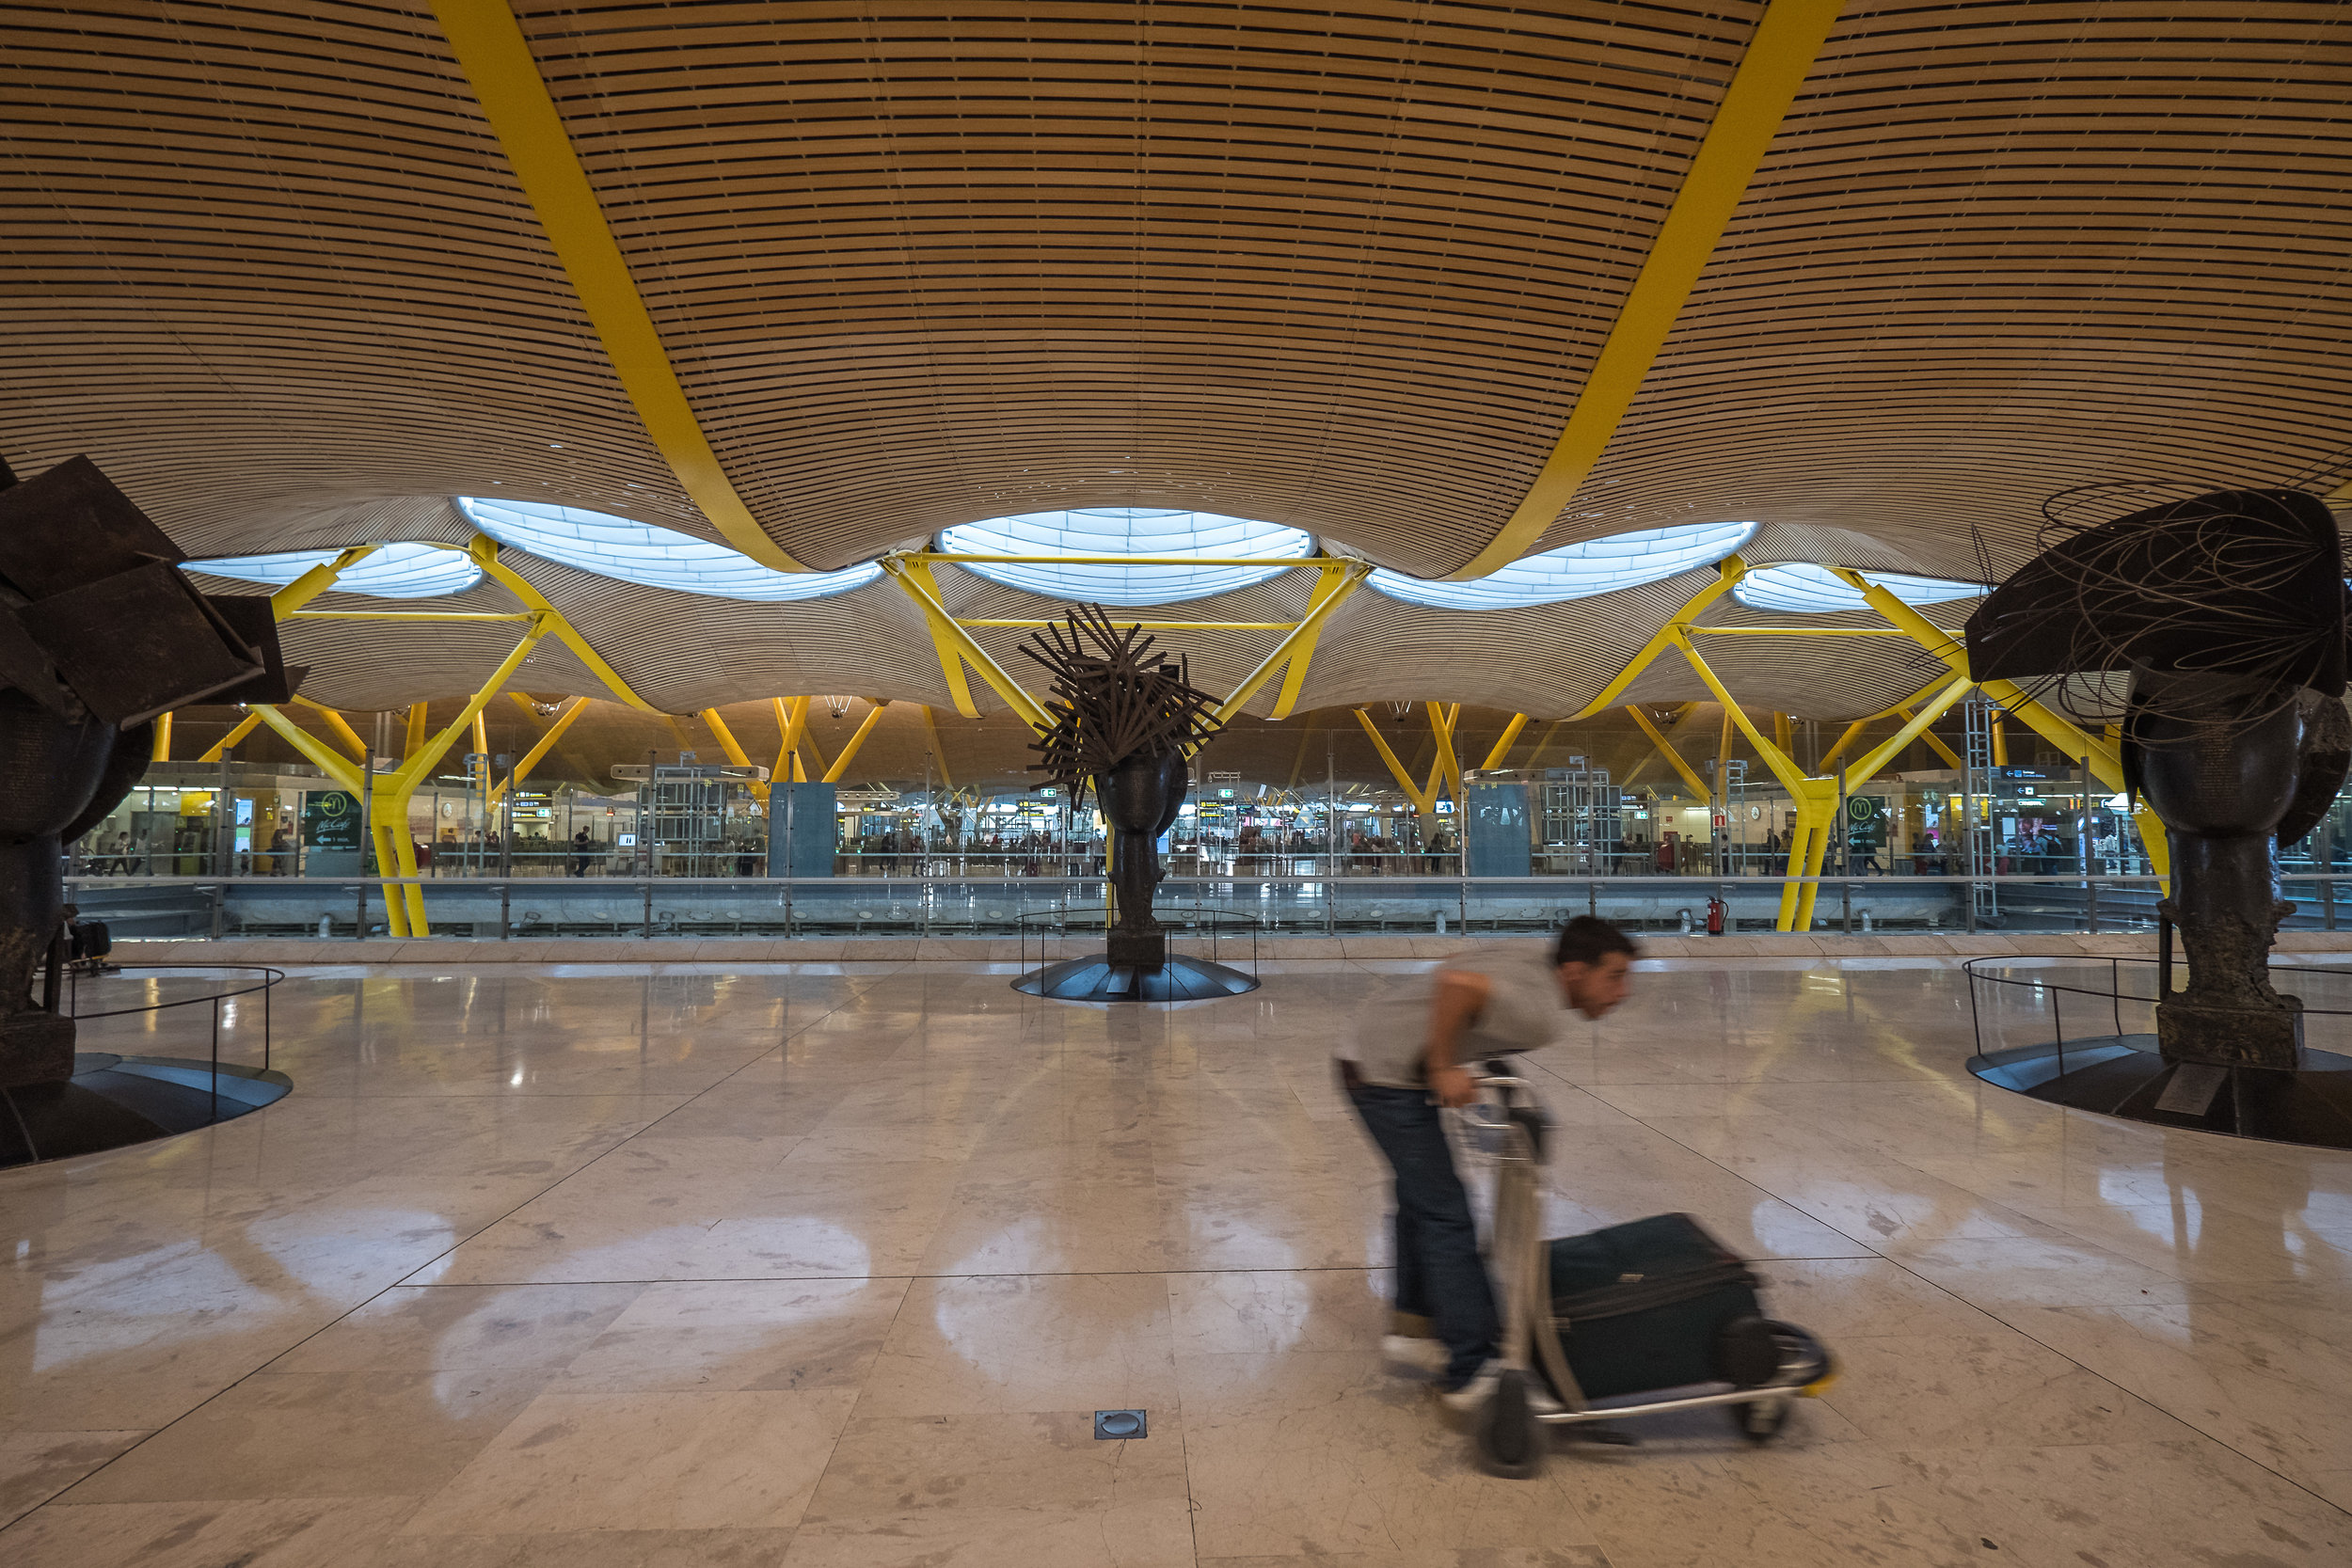 Spain_Madrid+Barajas+Airport+T4-1.jpg